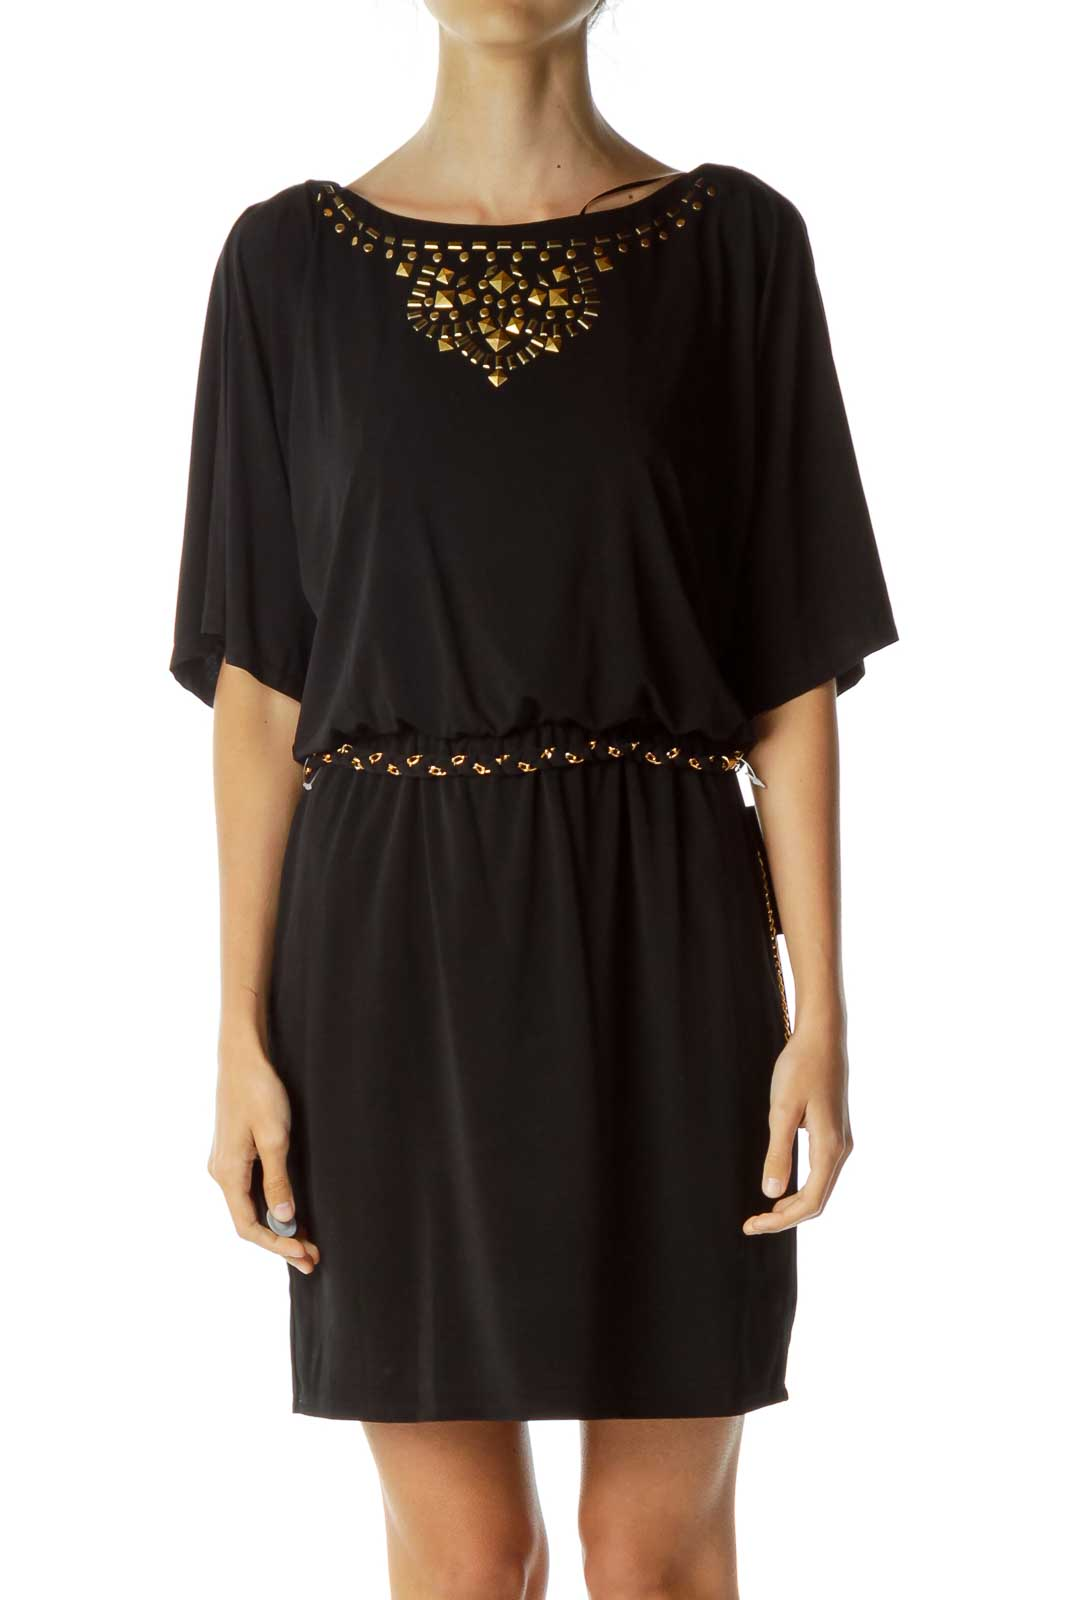 Black Dress with Gold Chain Details Front